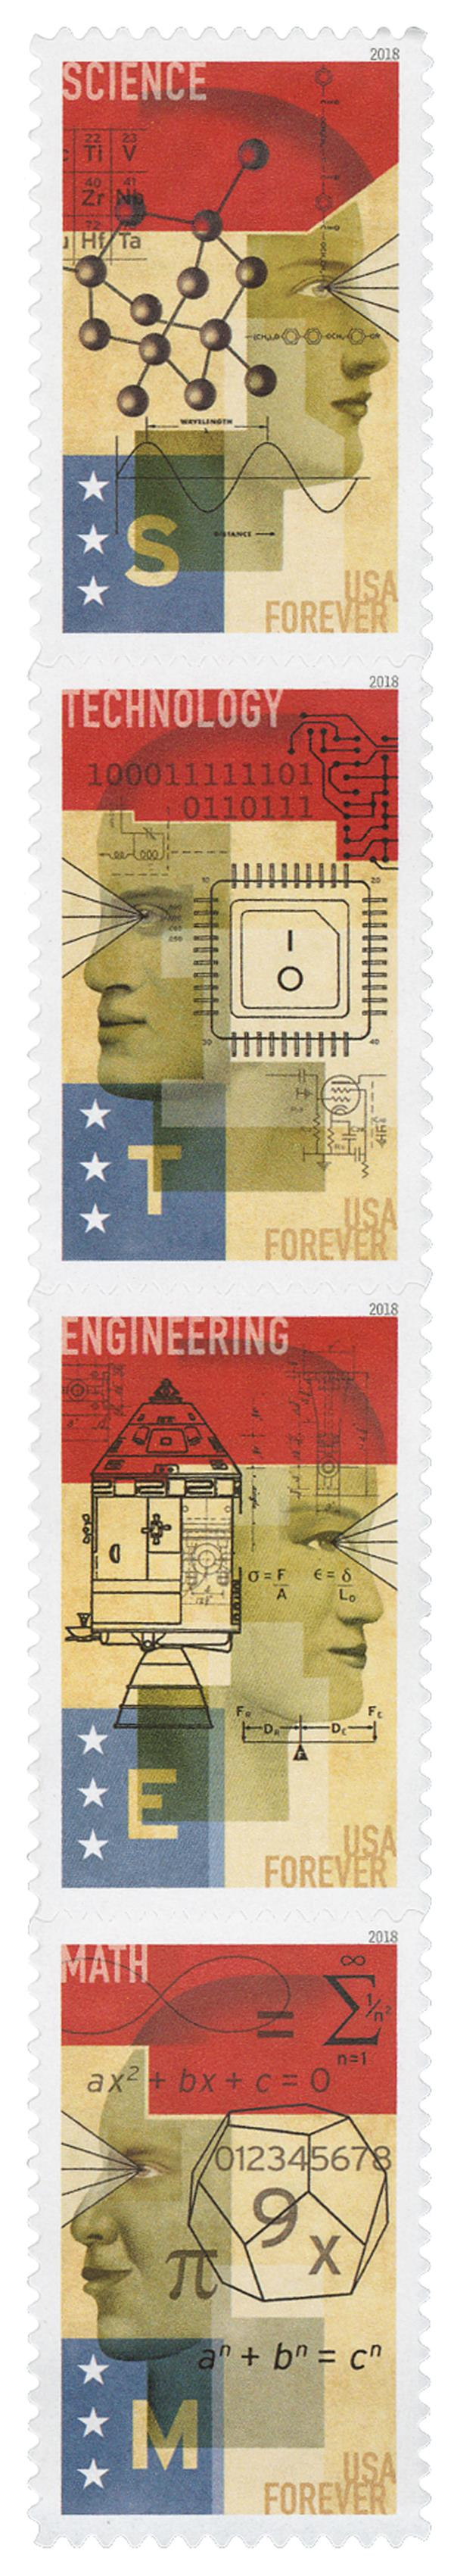 2018 First-Class Forever Stamp - STEM Education